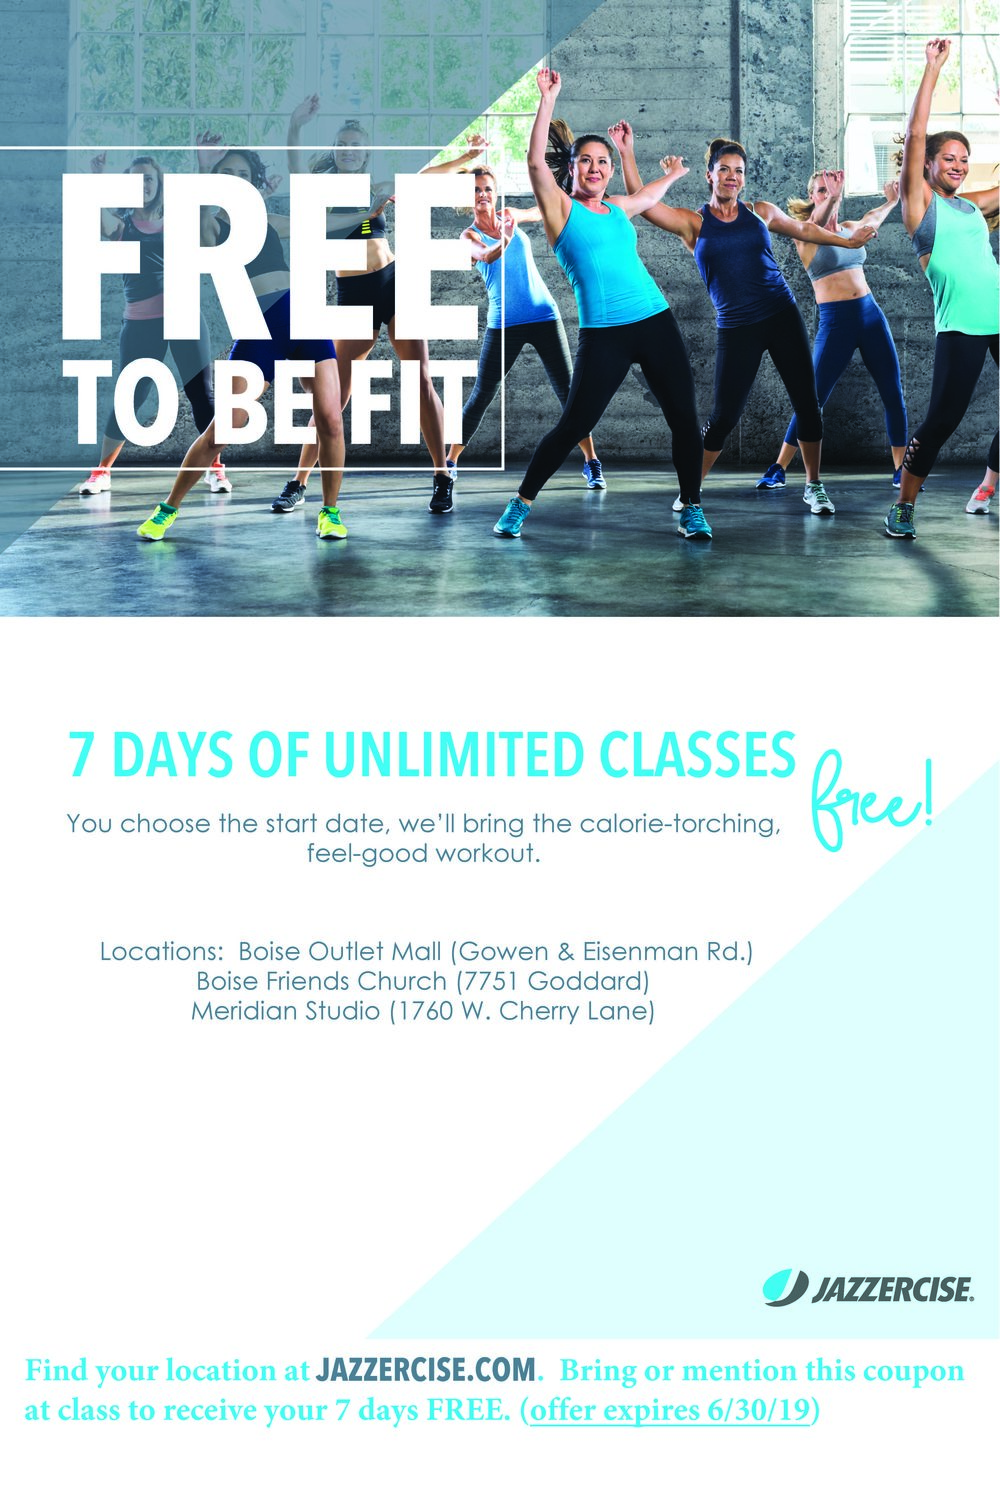 NewJazz.Customer_FreetobeFit_Poster_24x36 v2 Expires 6-30-19.jpg